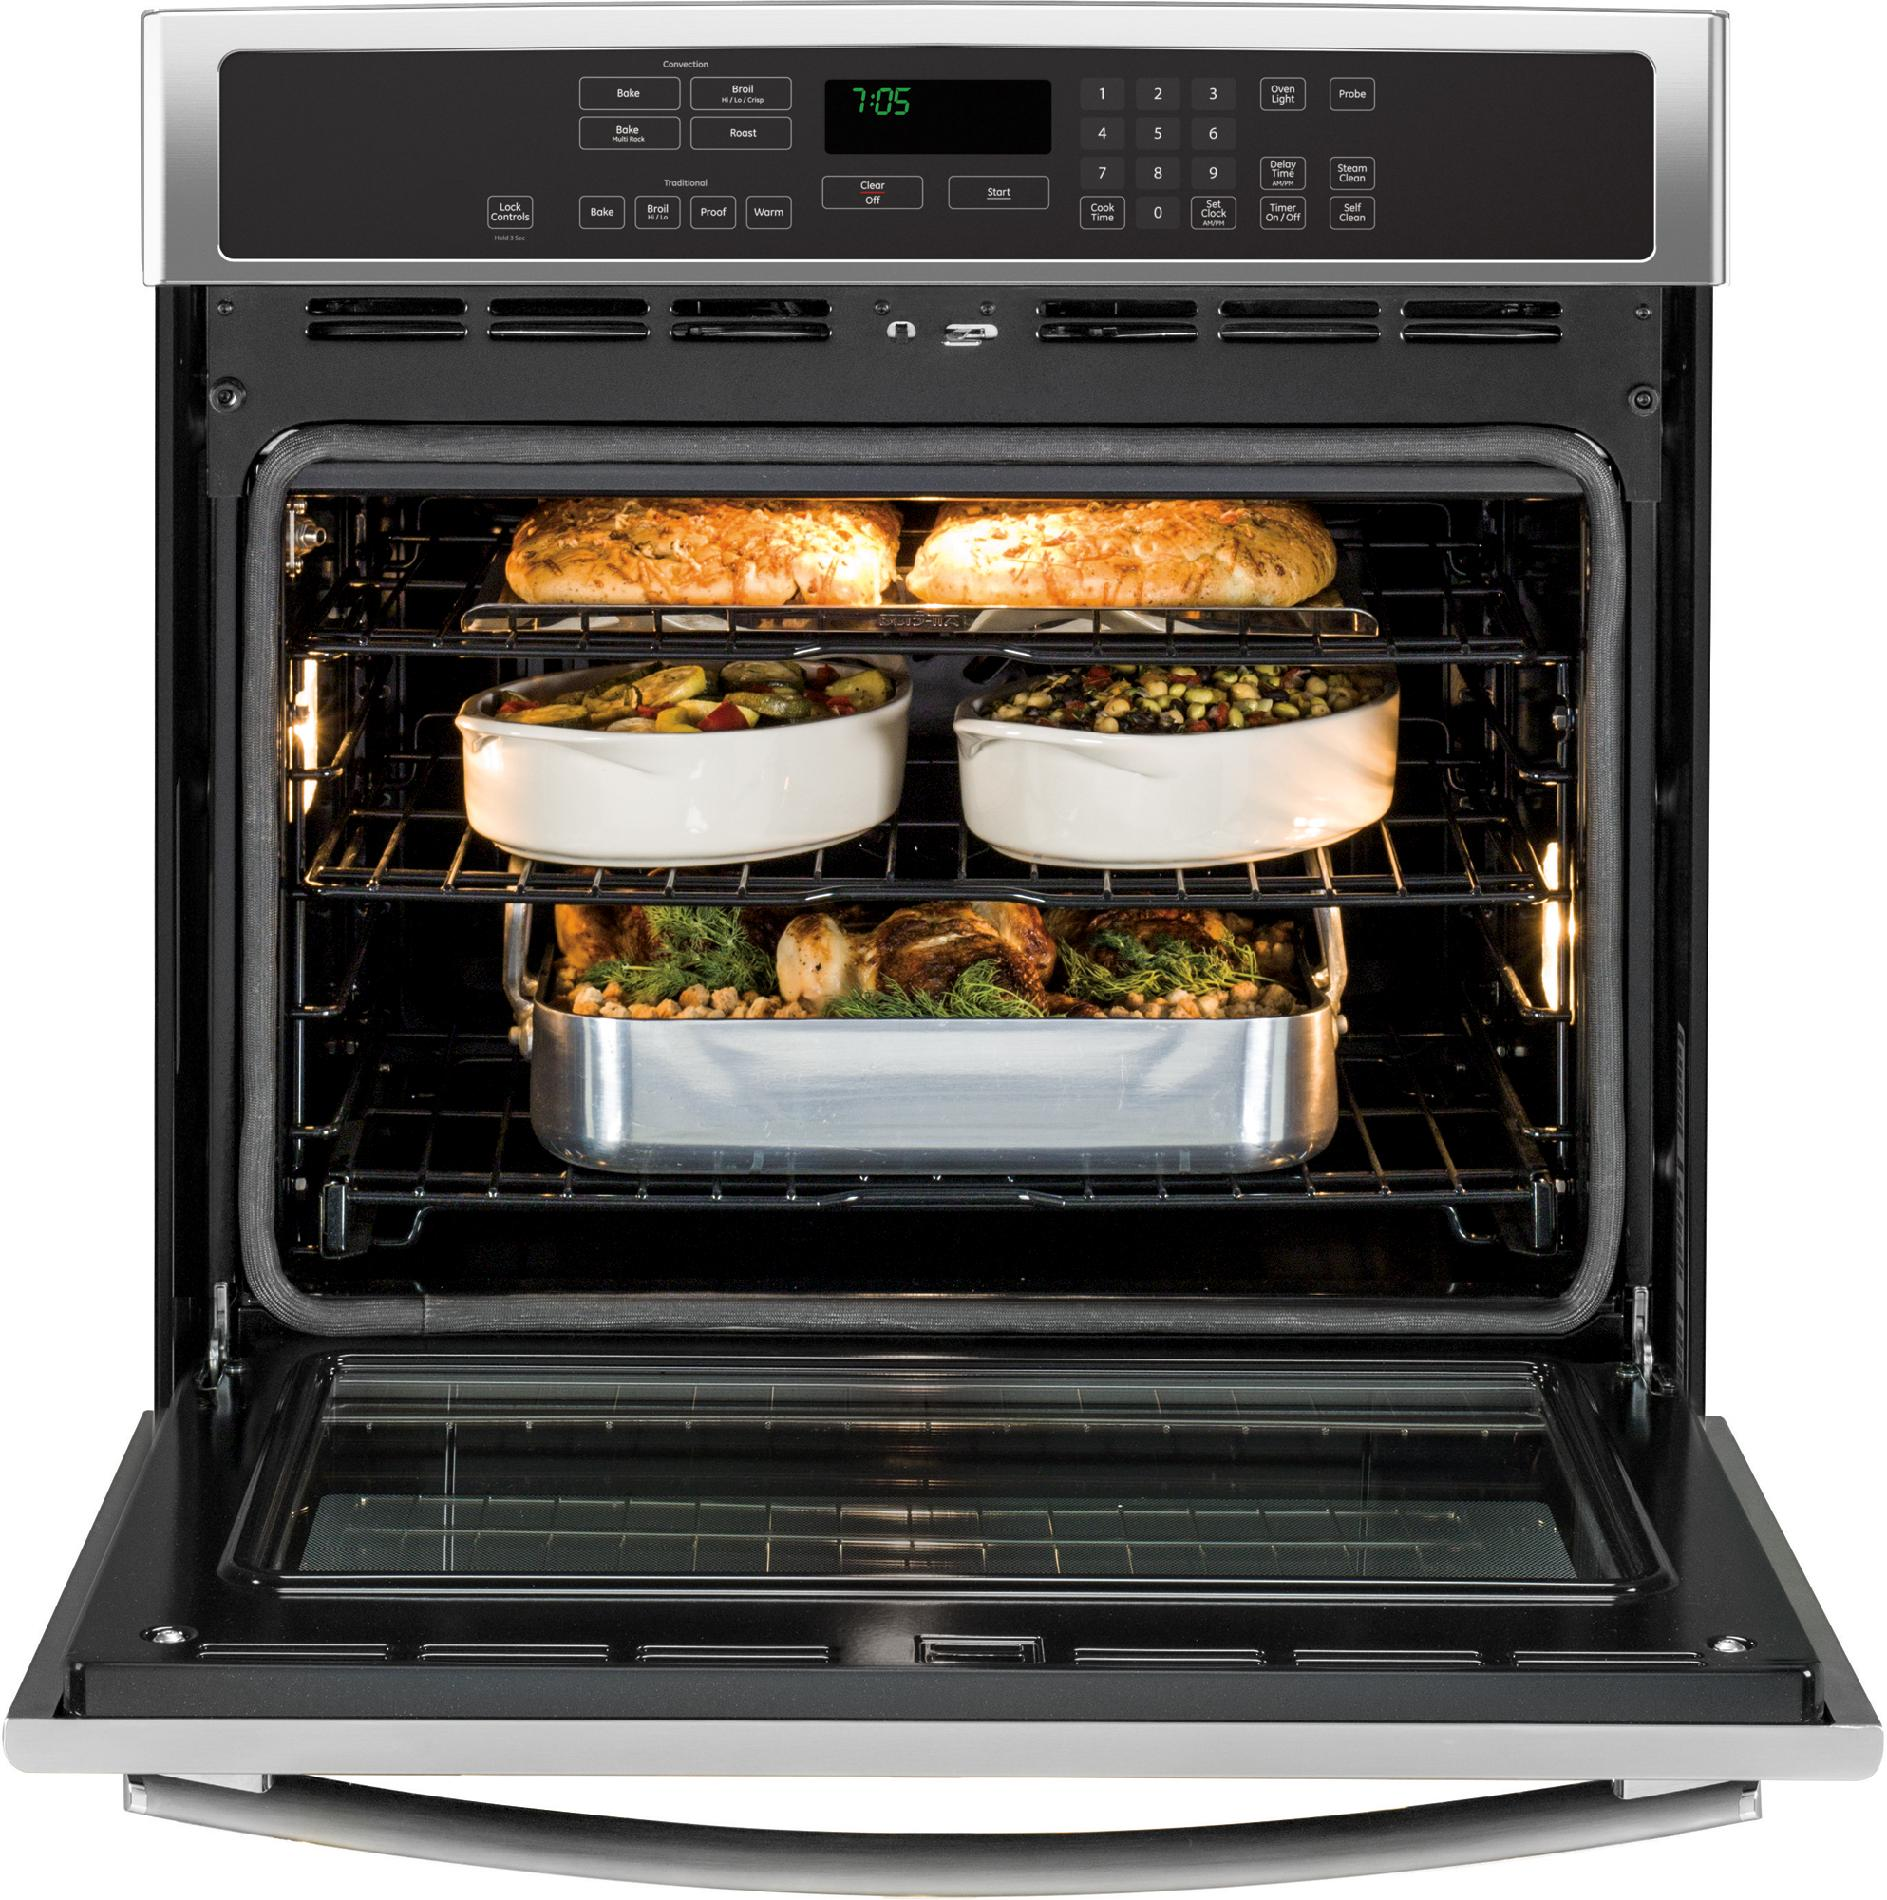 "GE Profile™ Series 30"" Electric Single Wall Oven w/ Convection - Stainless Steel"